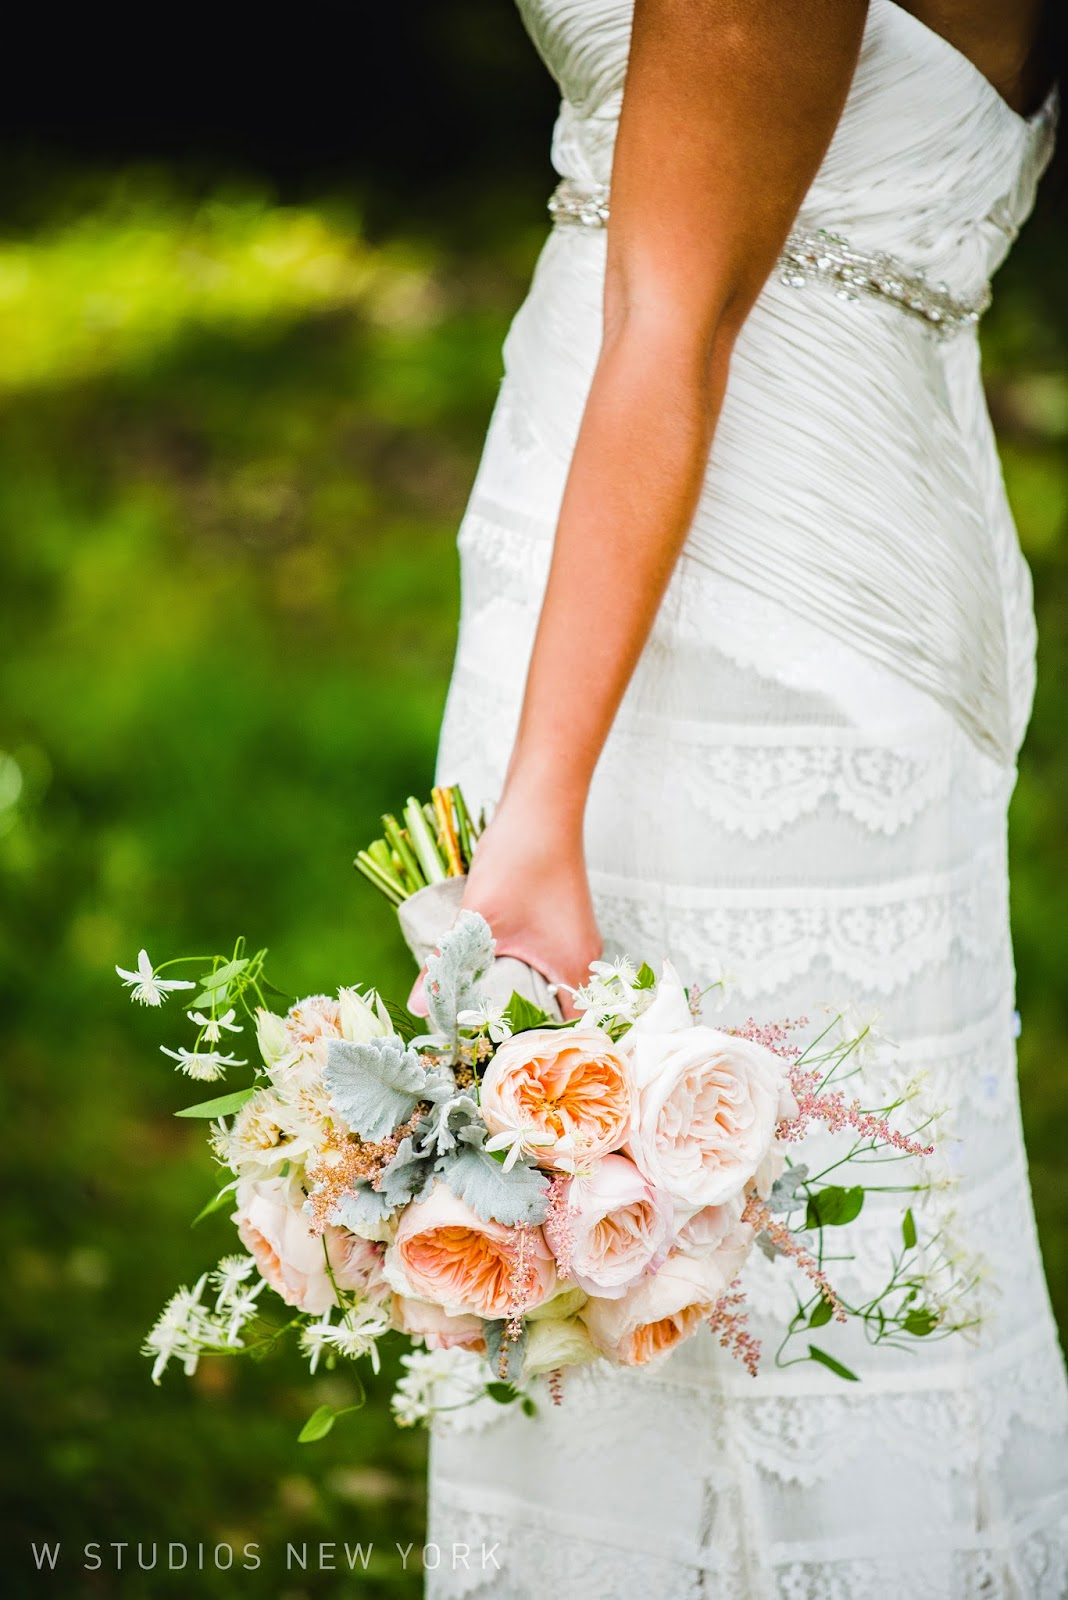 Highlands Club Wedding - Hudson Valley NY Weddings - Bridal Bouquets